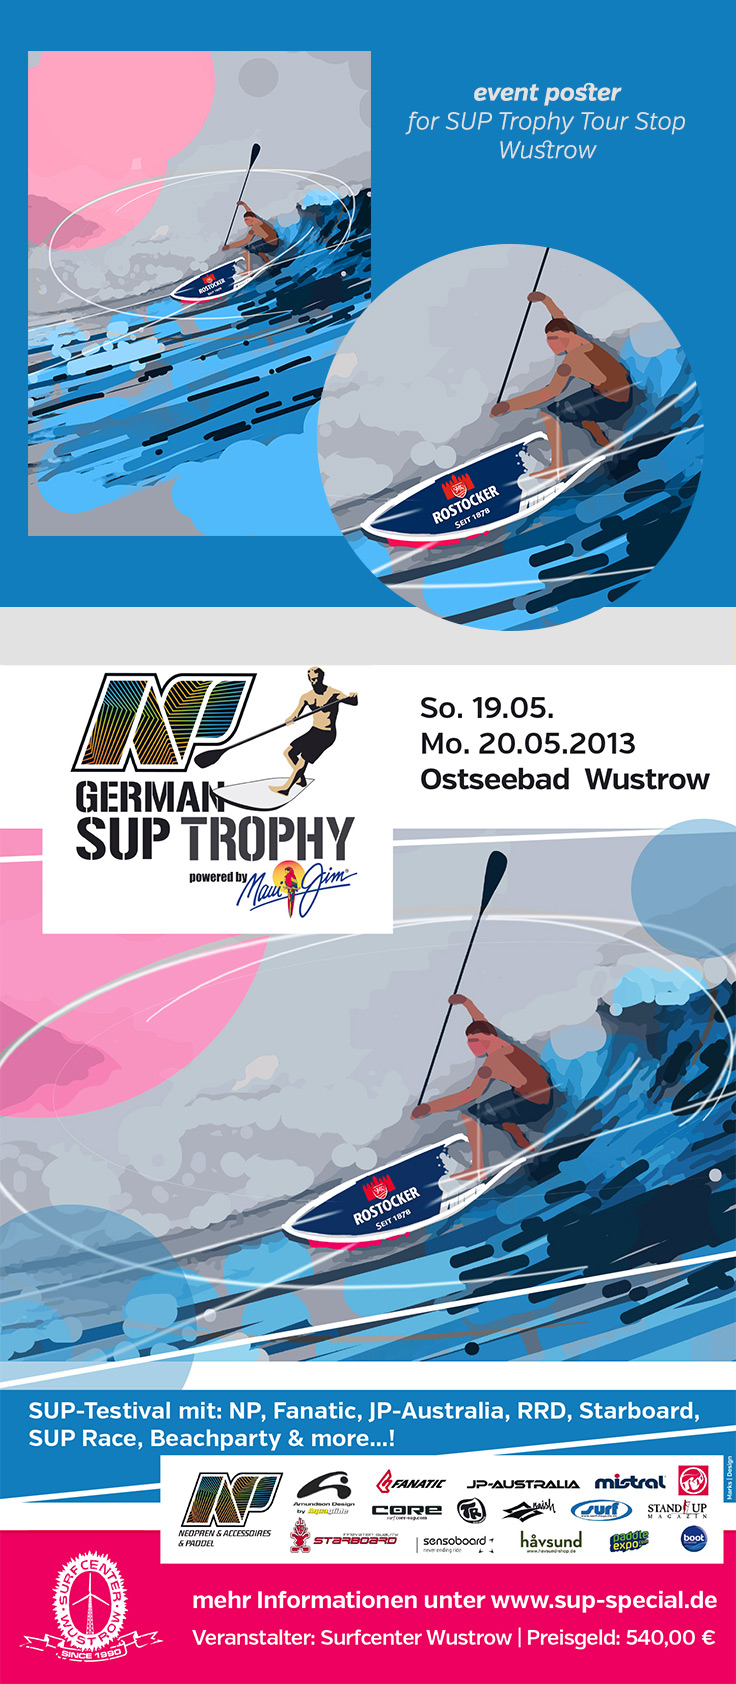 sup-trophy-wustrow-2013